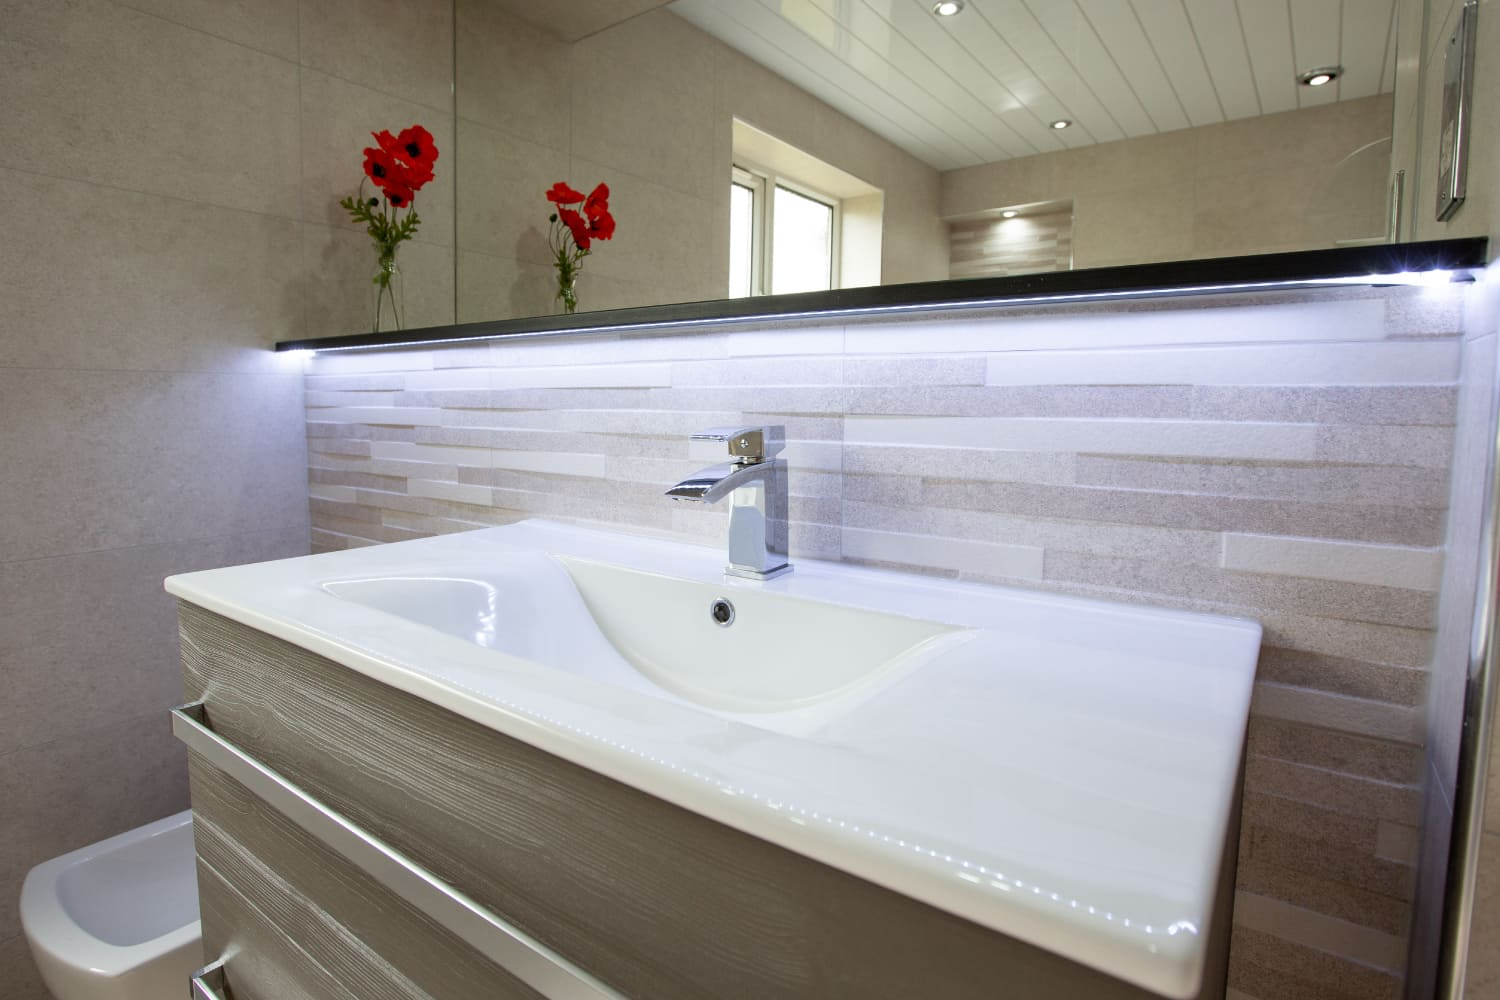 Three luxurious, calming modern bathrooms for Burnley home